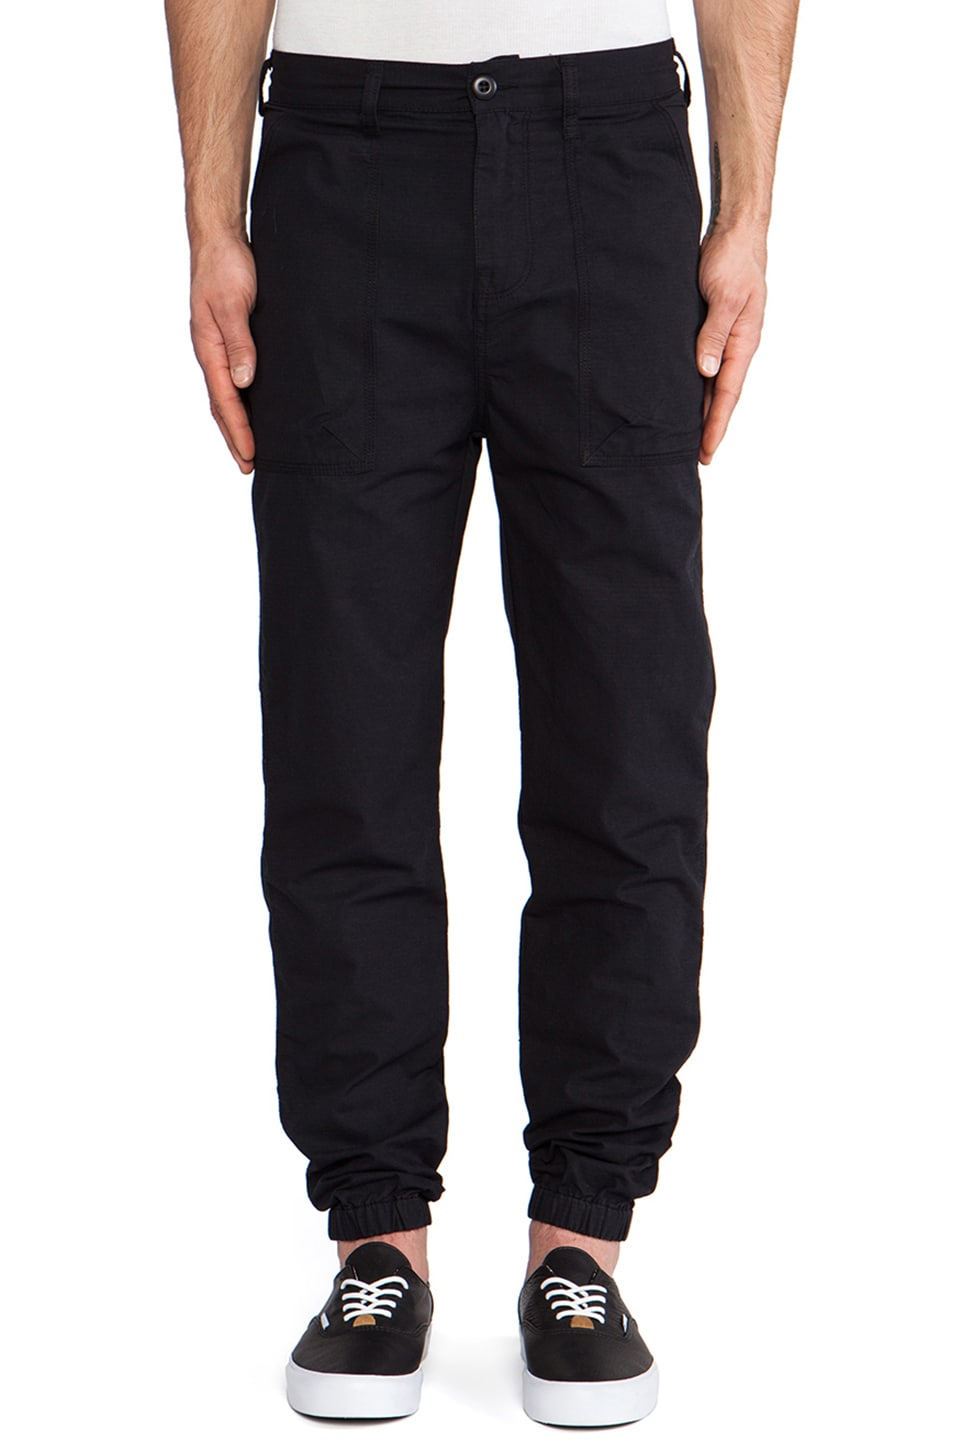 10 Deep Siler Pant in Black